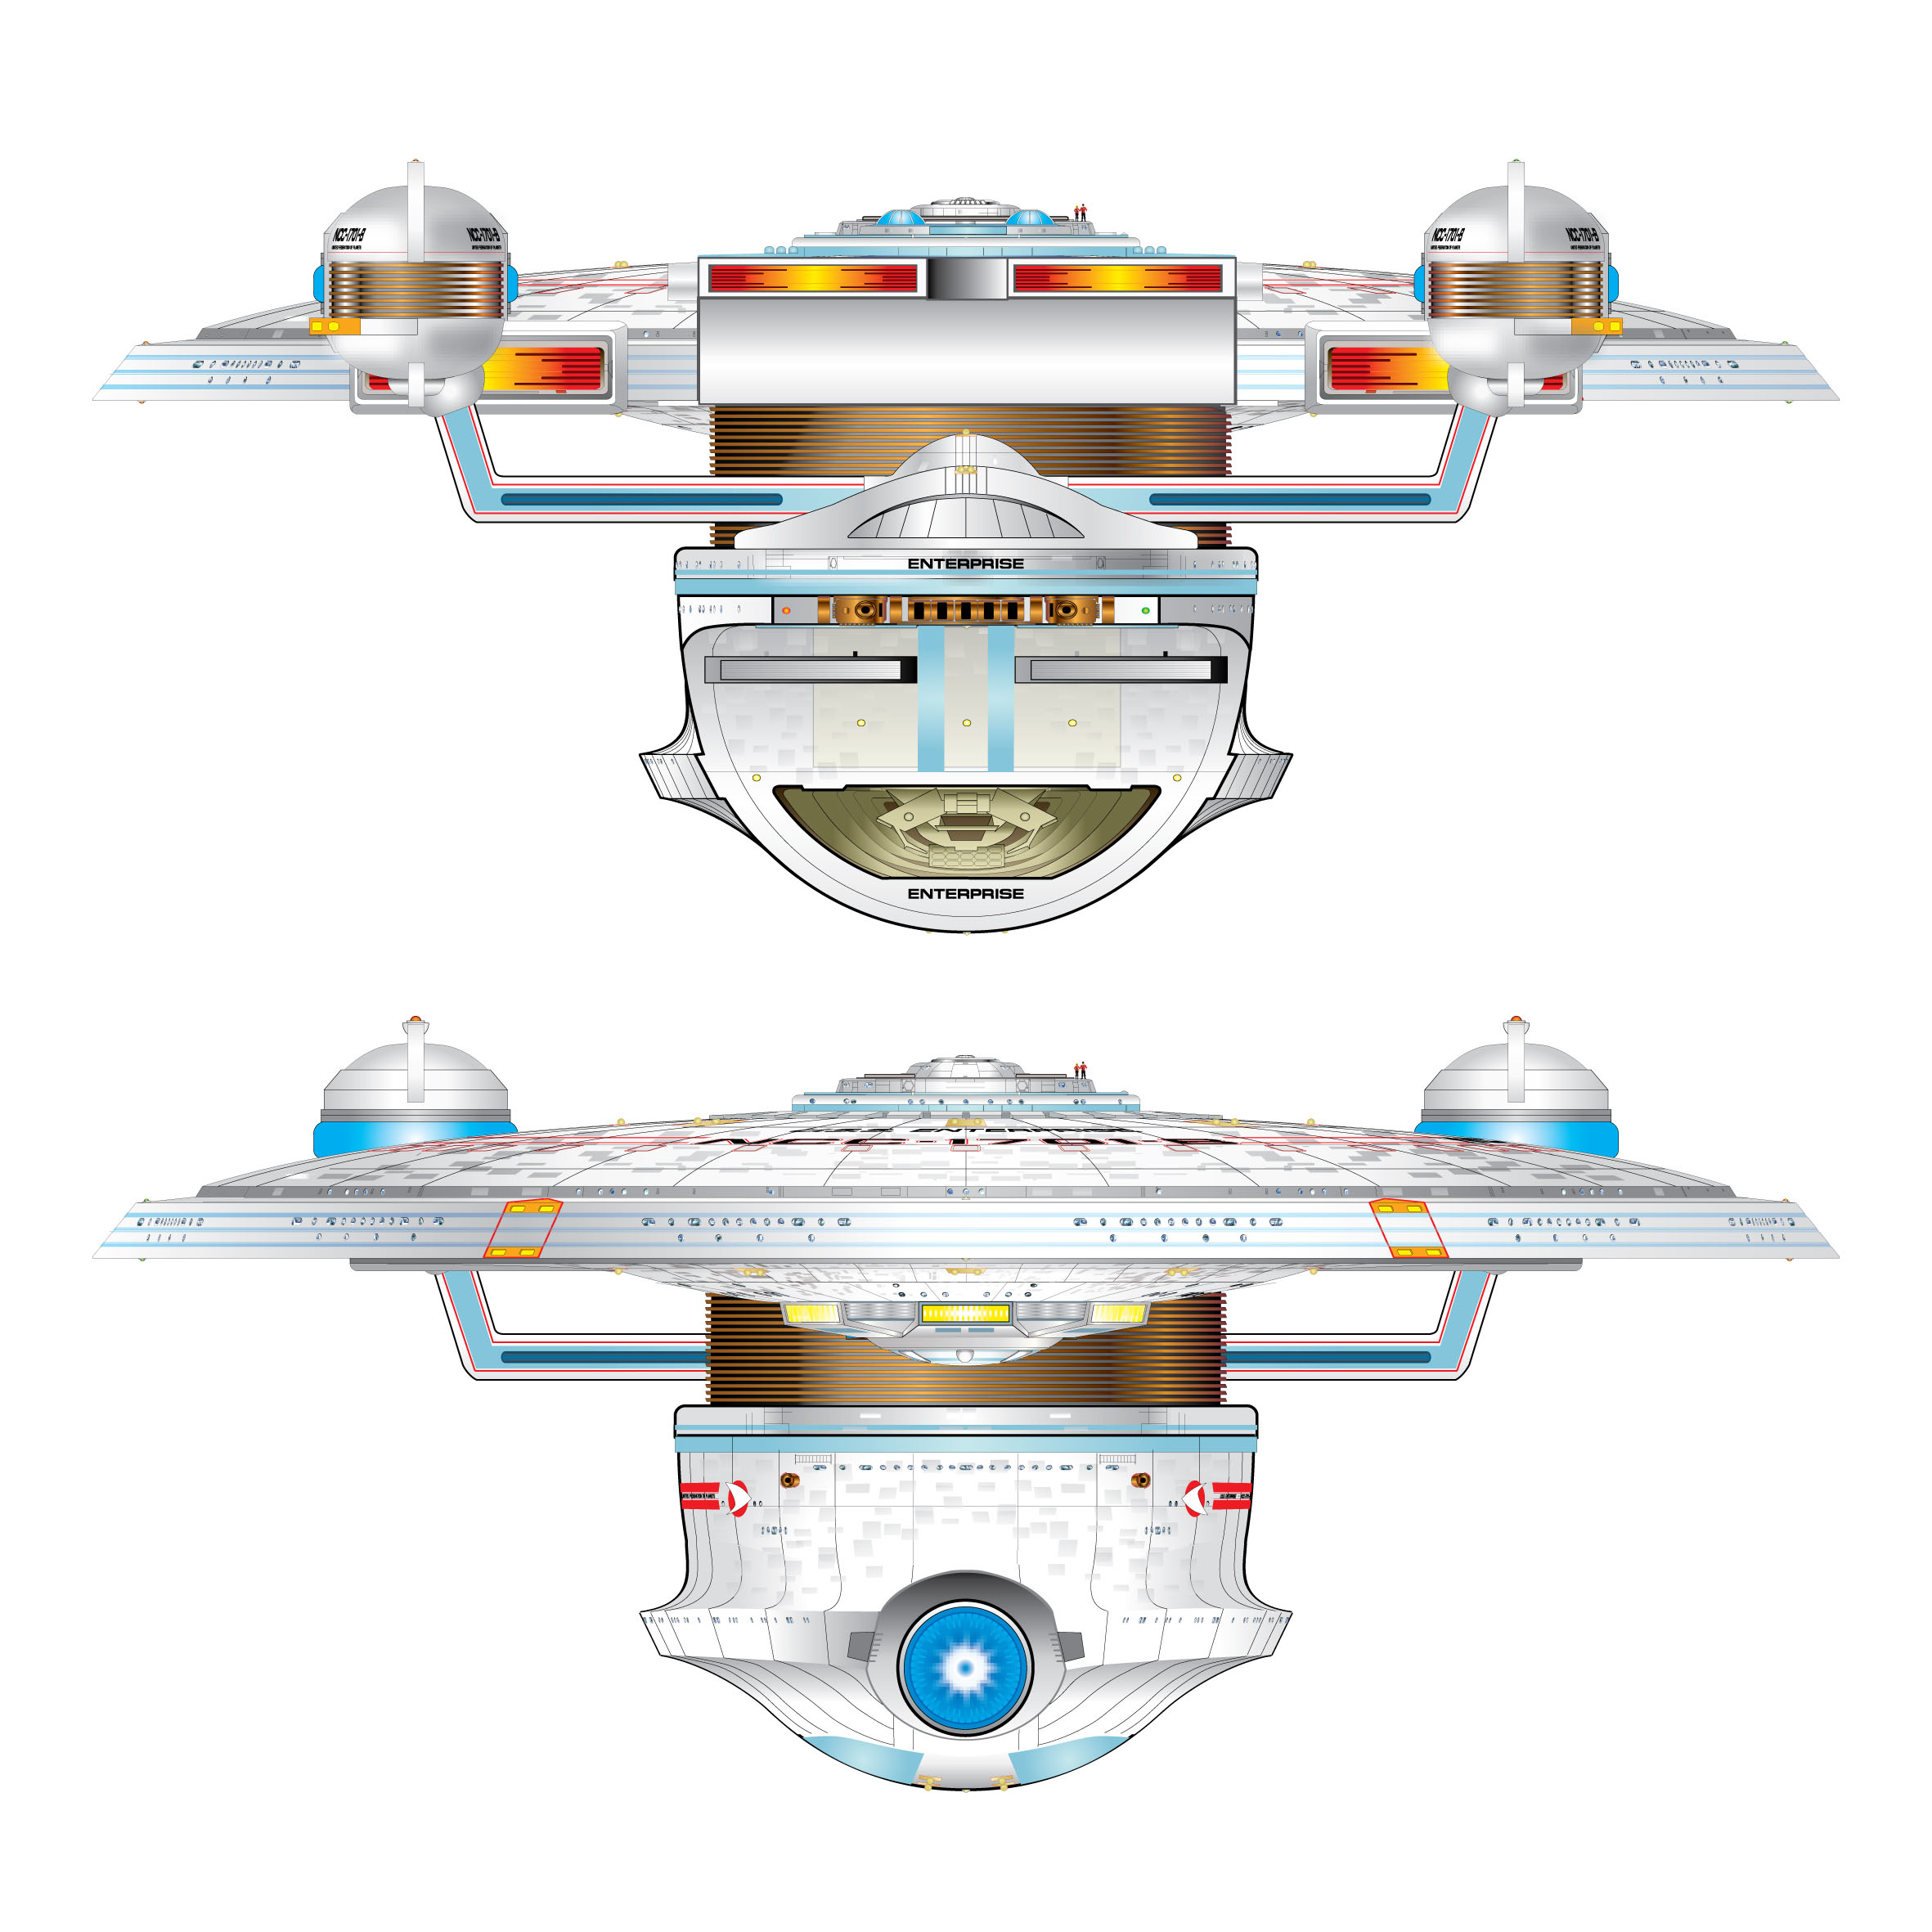 Uss enterprise ncc 1701 d galaxy class saucer separation r flickr - Dorsal And Ventral Schematics Of U S S Enterprise Ncc 1701 B Star Trek U S S Enterprise Ncc 1701 B Pinterest Star Trek Trek And Uss Enterprise